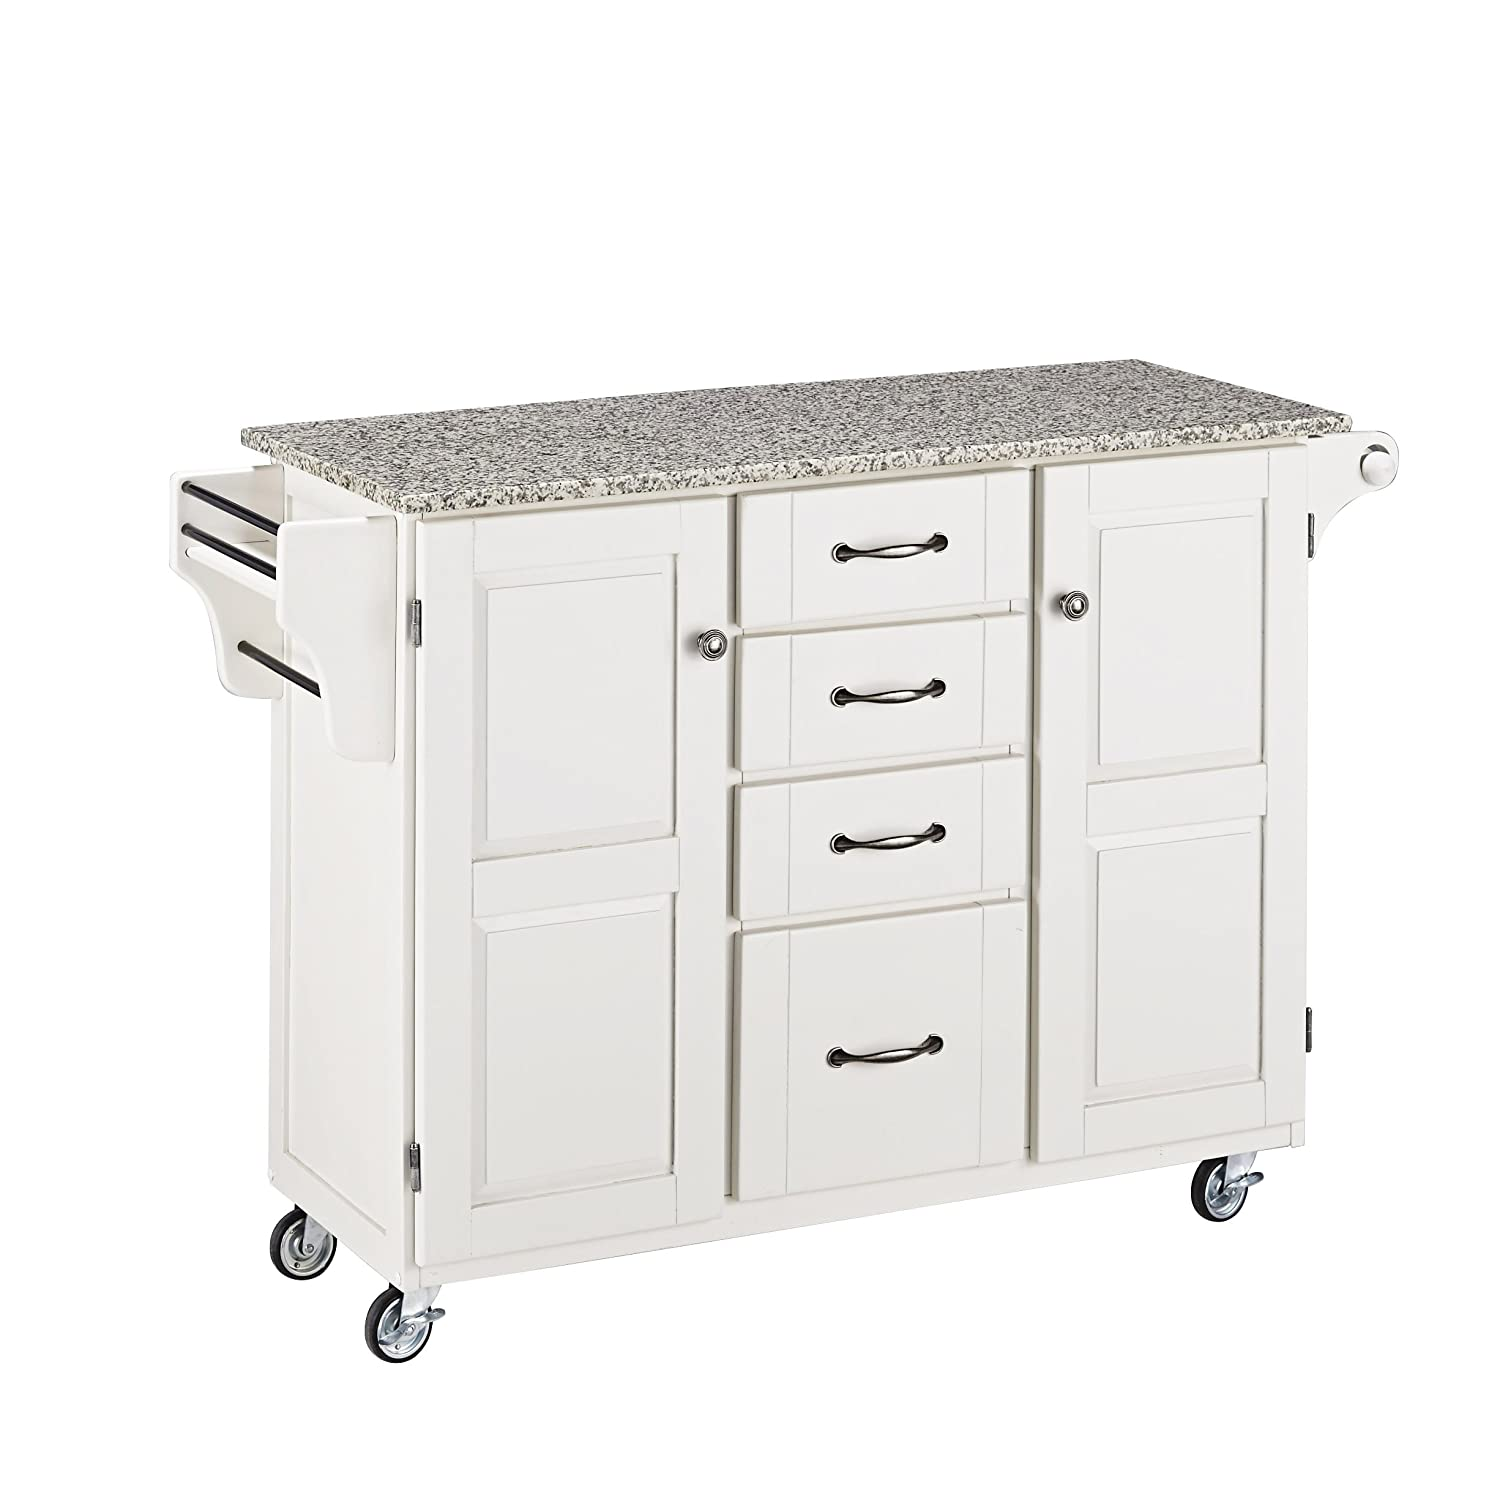 Home Styles 9100-1023 Create-a-Cart 9100 Series Cuisine Cart with Salt and Pepper Granite Top - White - 52-1-2-Inch